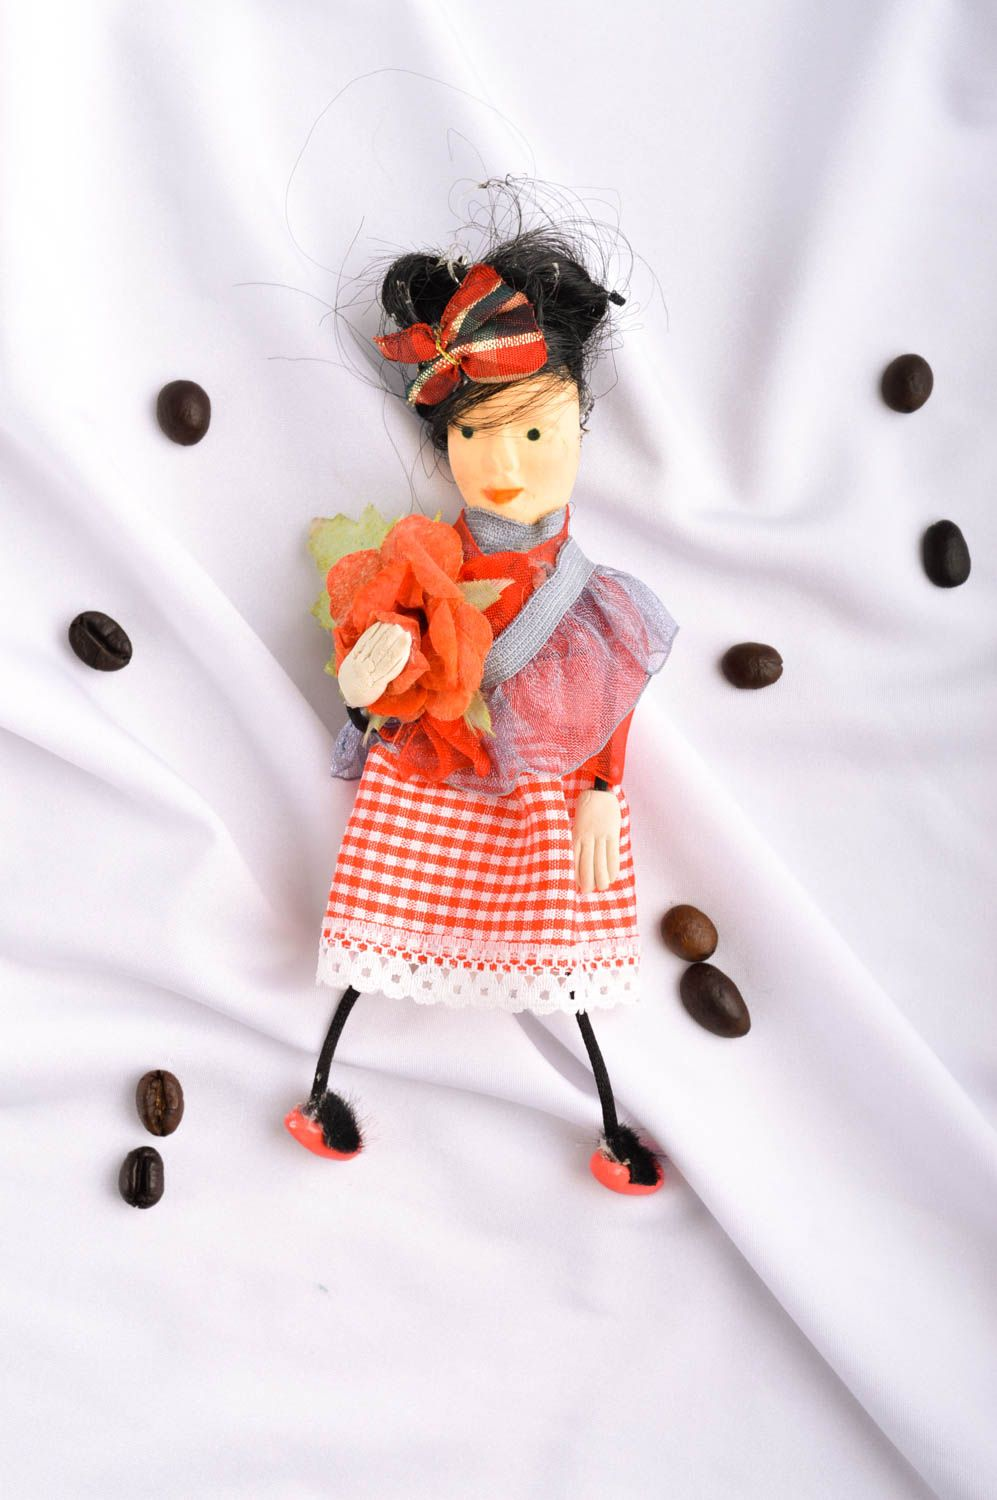 Beautiful handmade fabric toy rag doll collectible dolls decorative use only photo 1